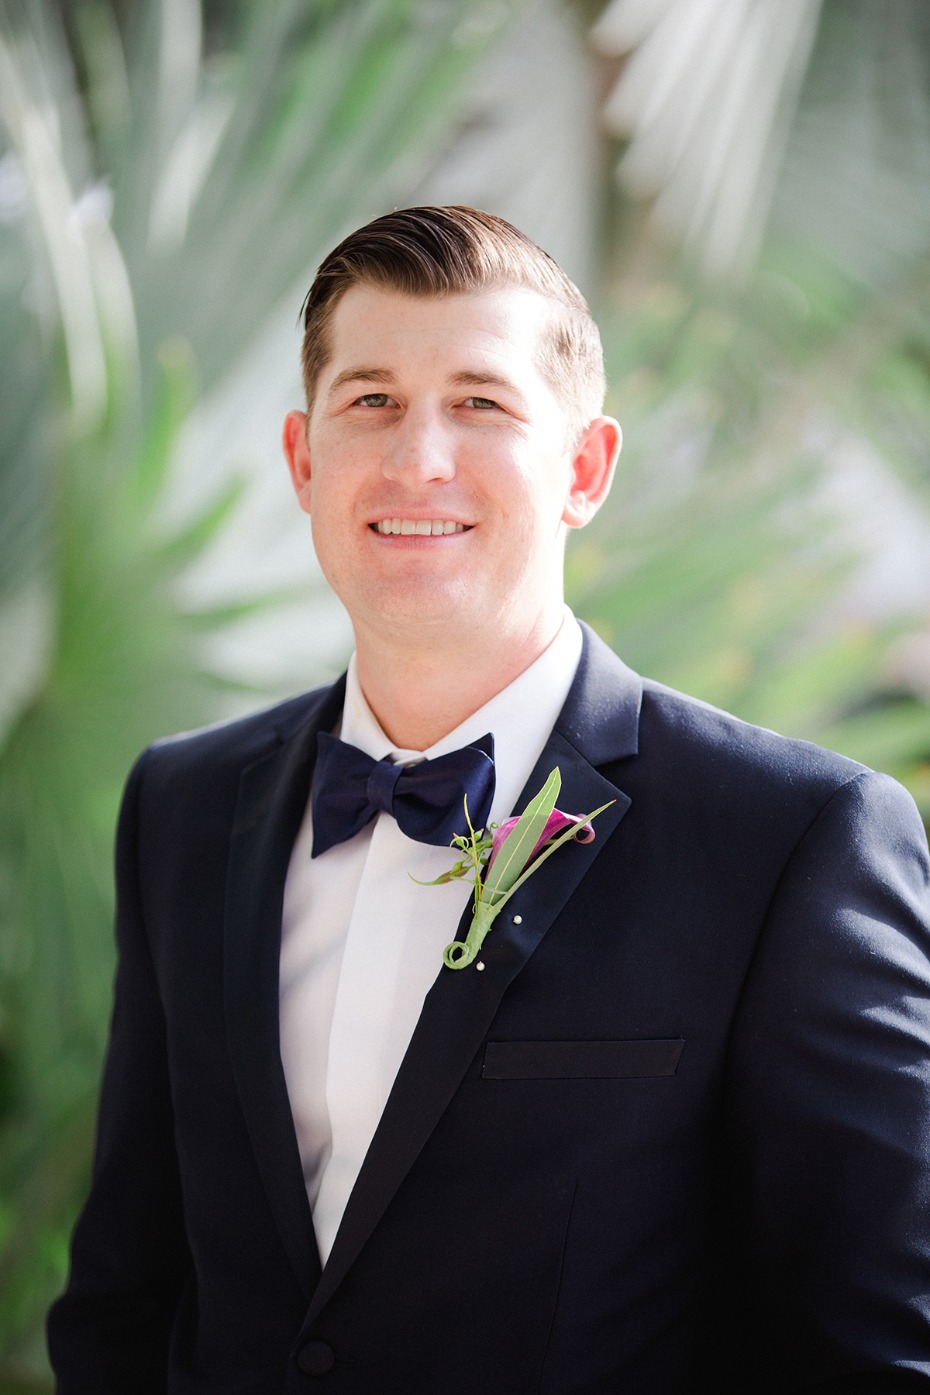 groom in classic suit and bow tie